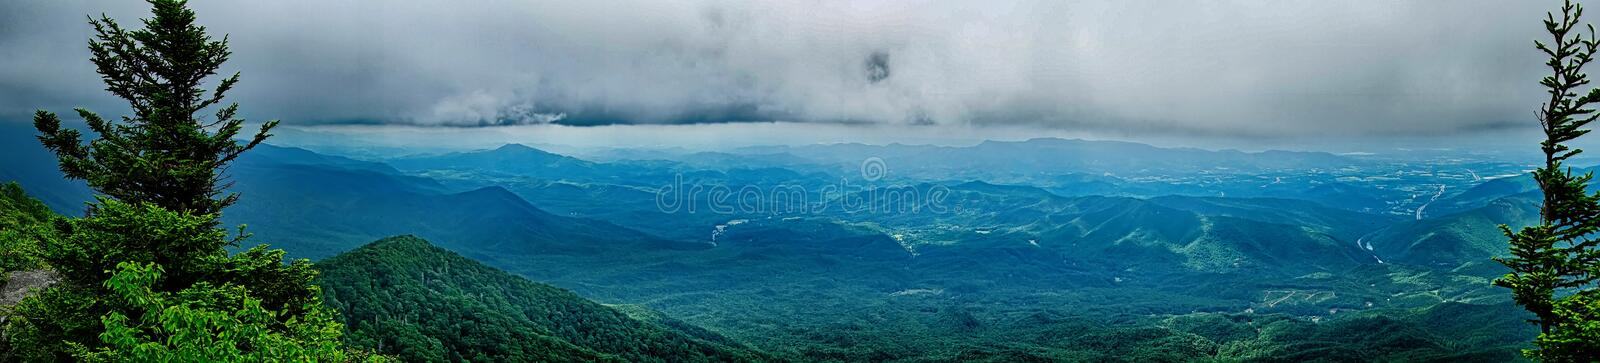 Scenes along appalachian trail in great smoky mountains stock images